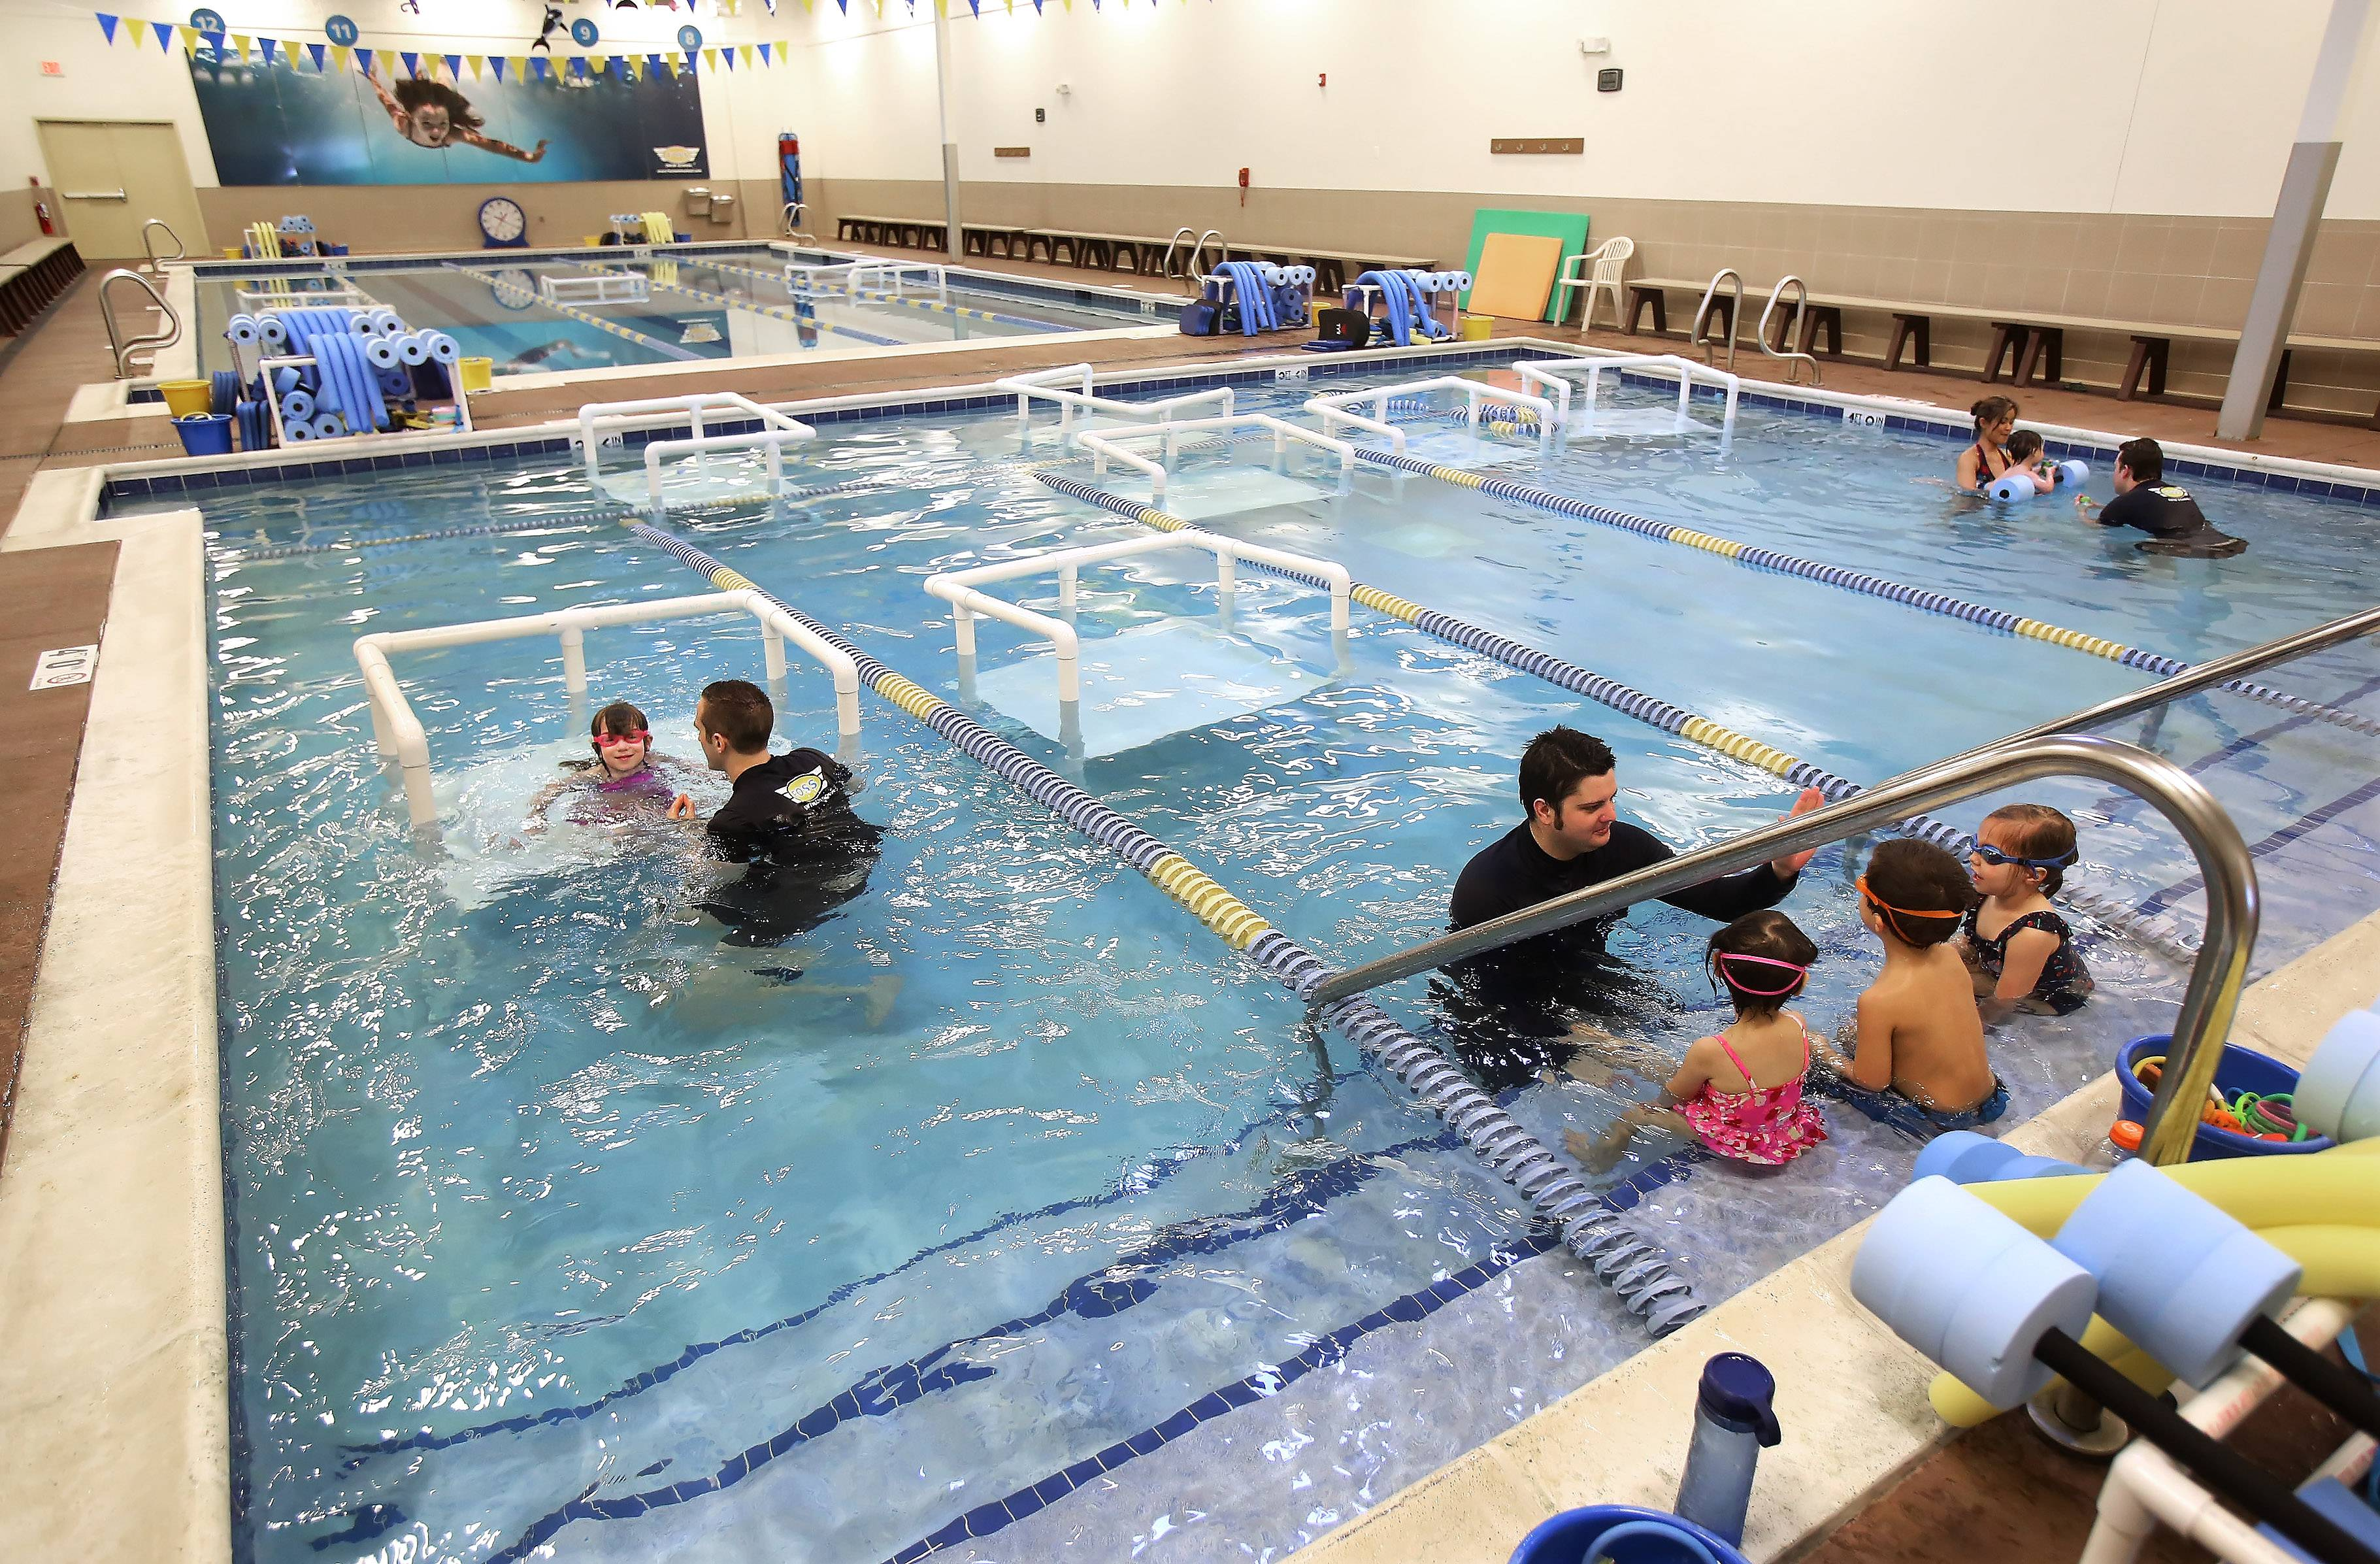 Swim instructors work with young children as they learn to swim at FOSS Swim School in Highland Park.